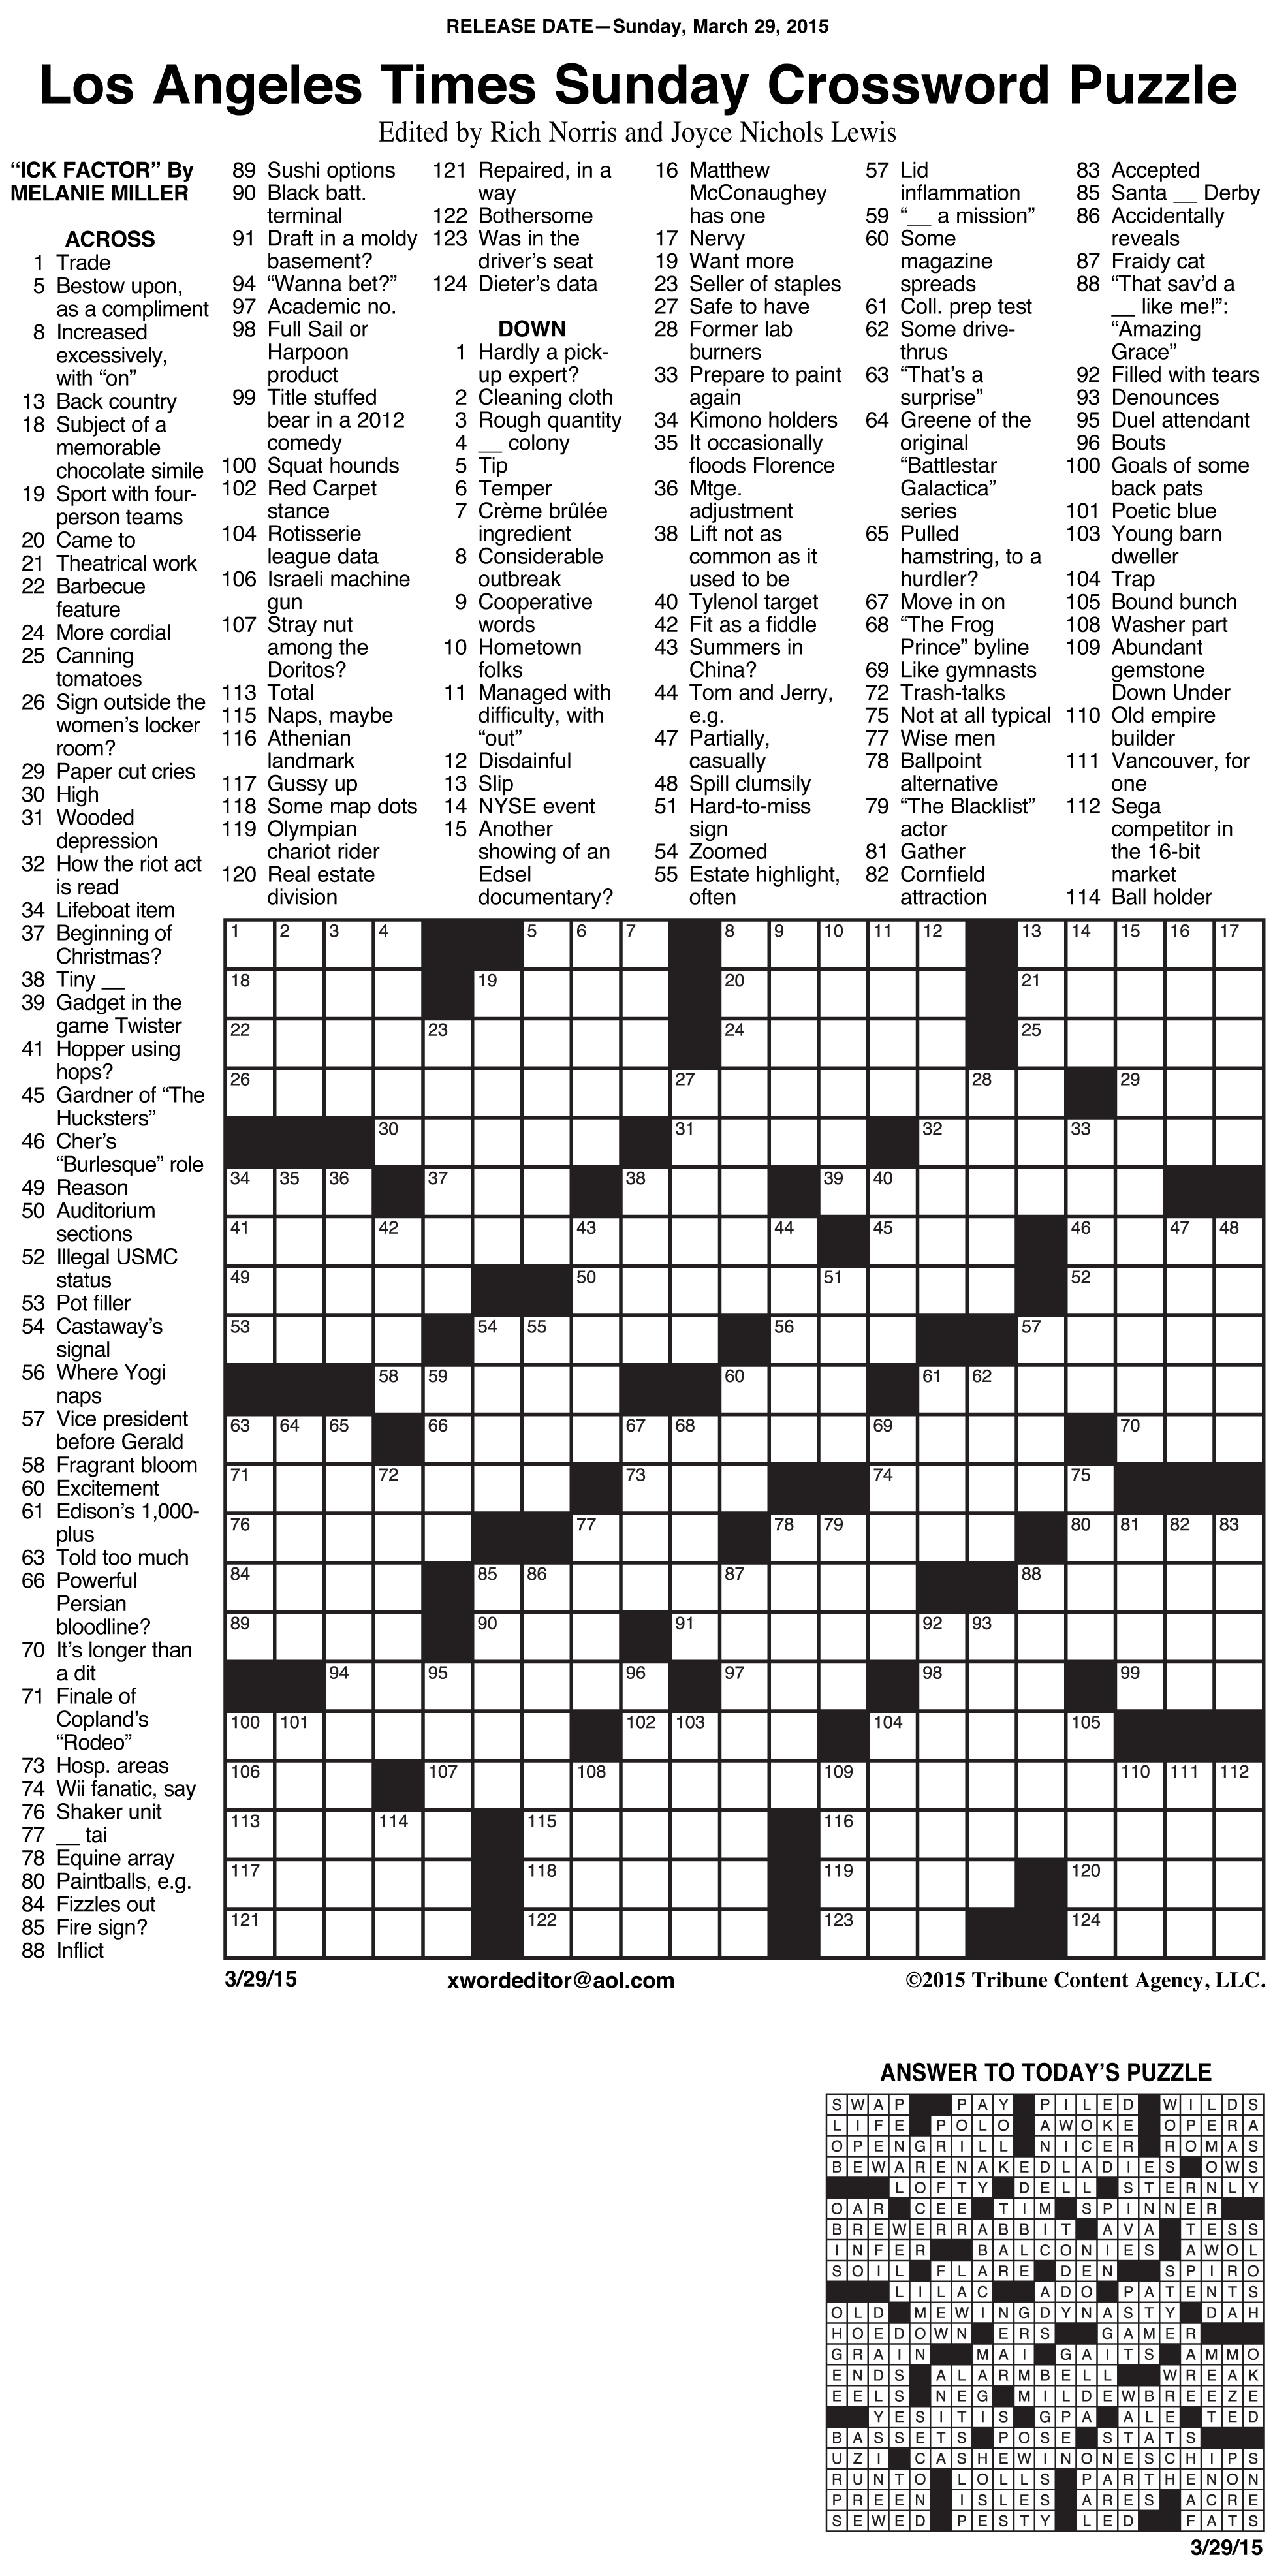 Sample Of Los Angeles Times Sunday Crossword Puzzle | Tribune - Usa Today Printable Crossword Puzzles 2015